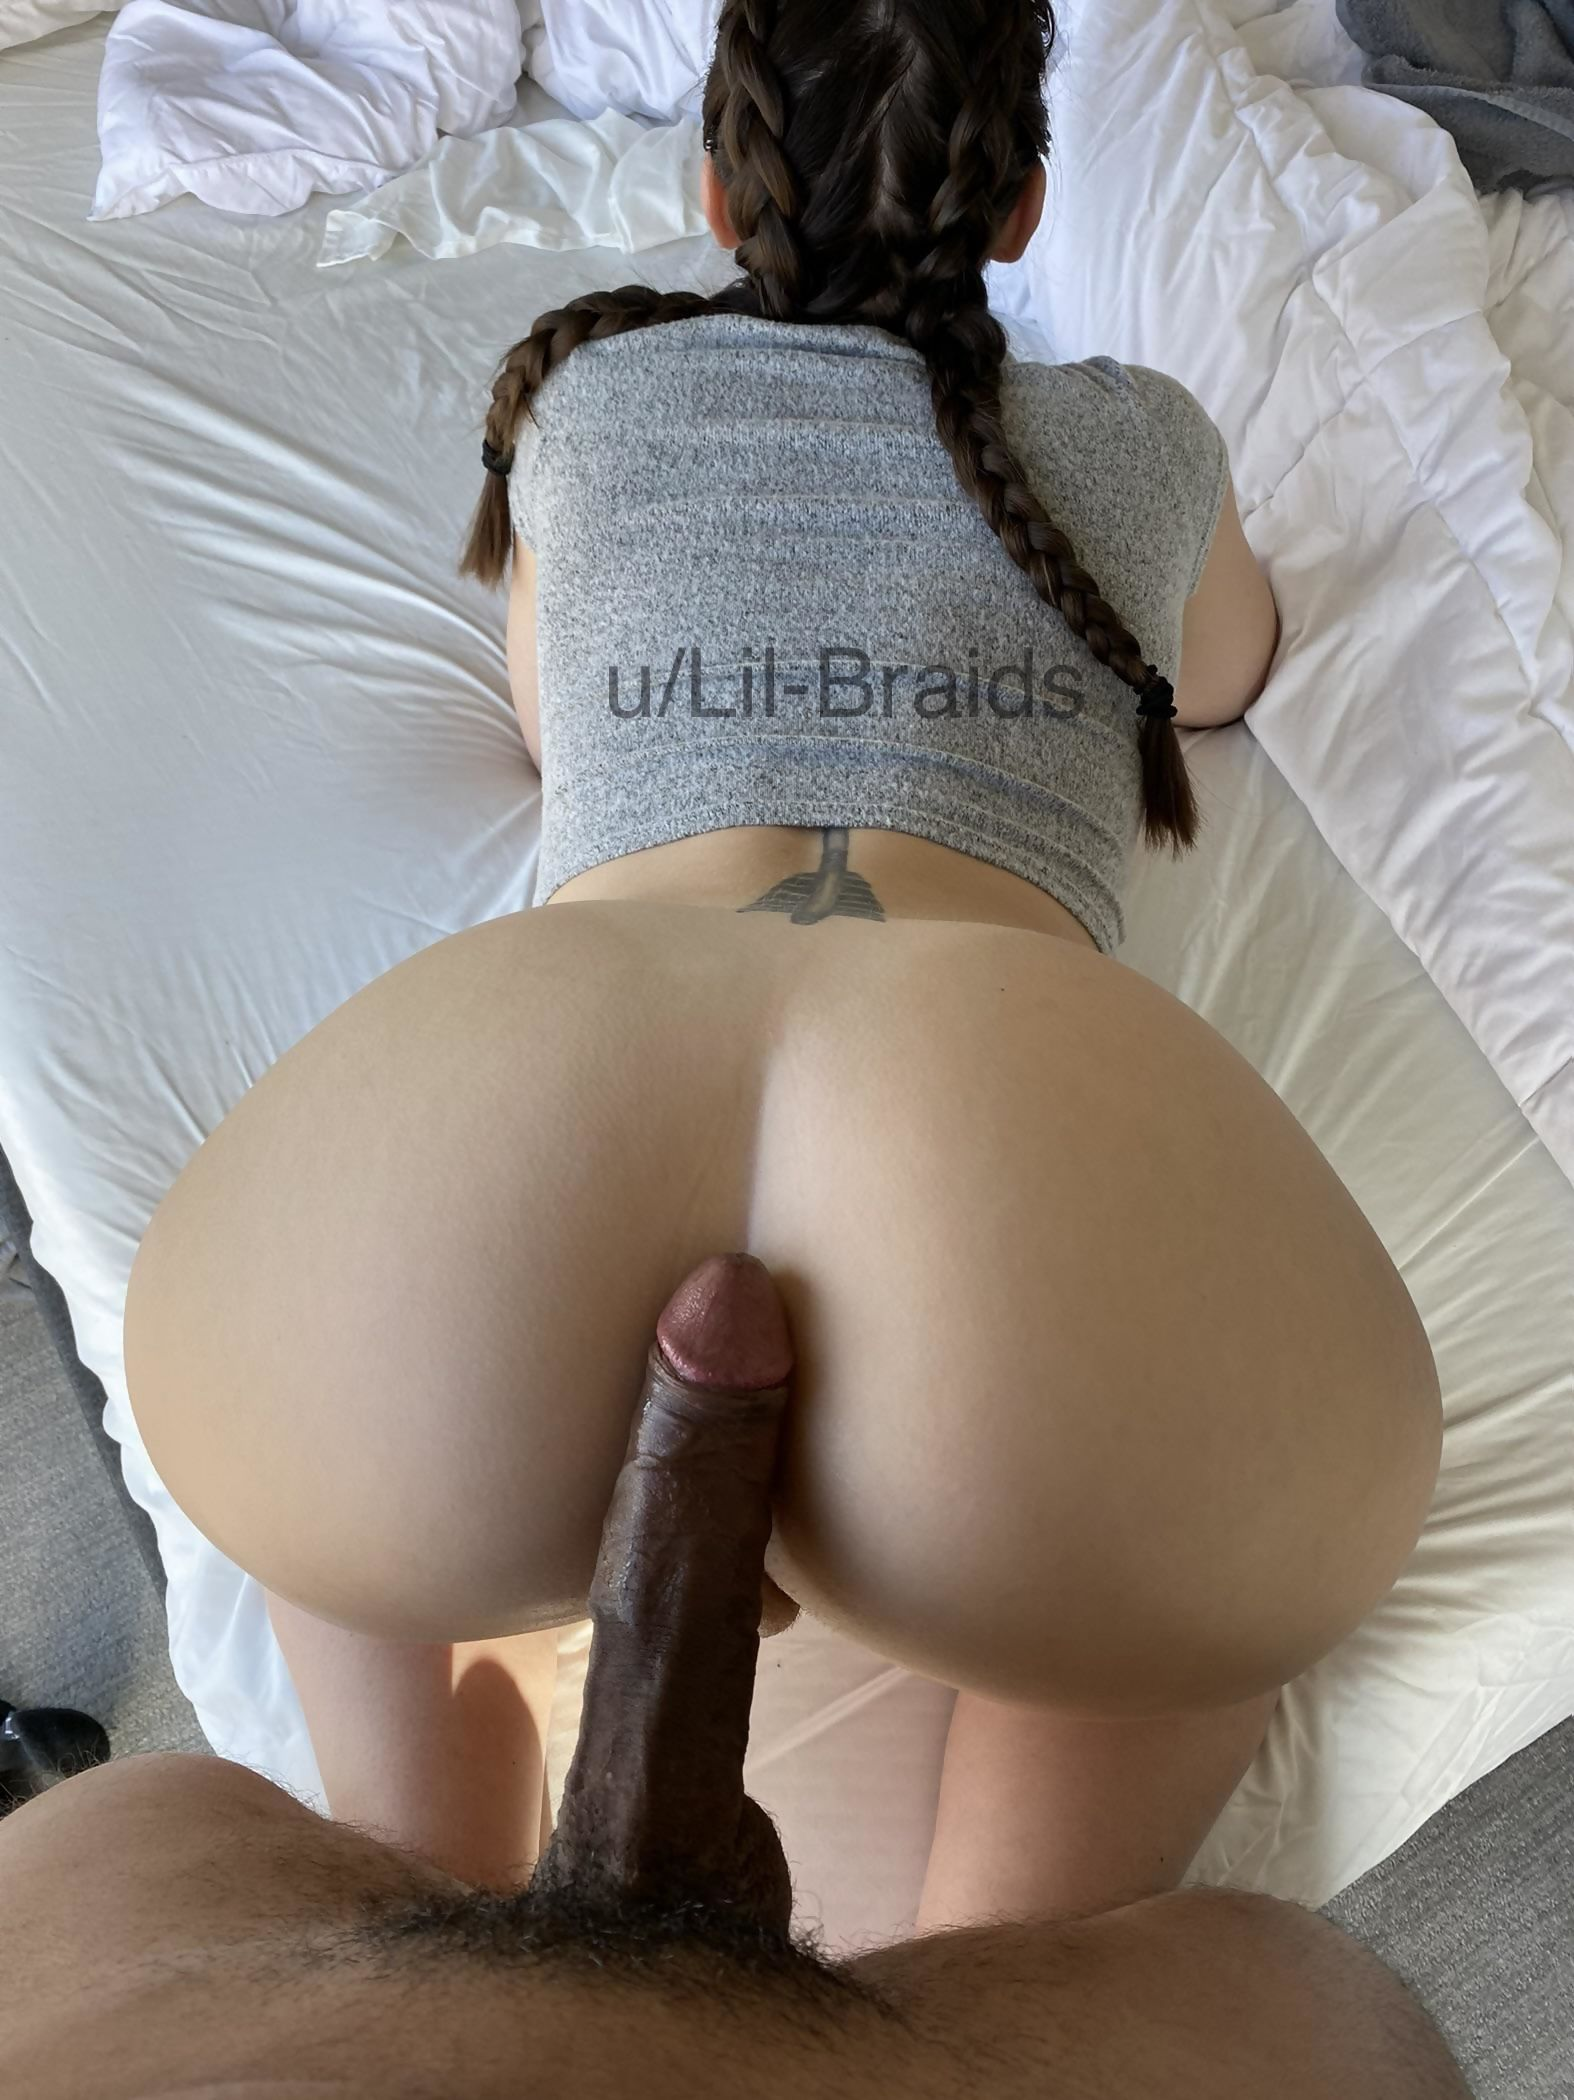 FULL VIDEO: Lil Braids Nude & Sex Tape Onlyfans Leaked!